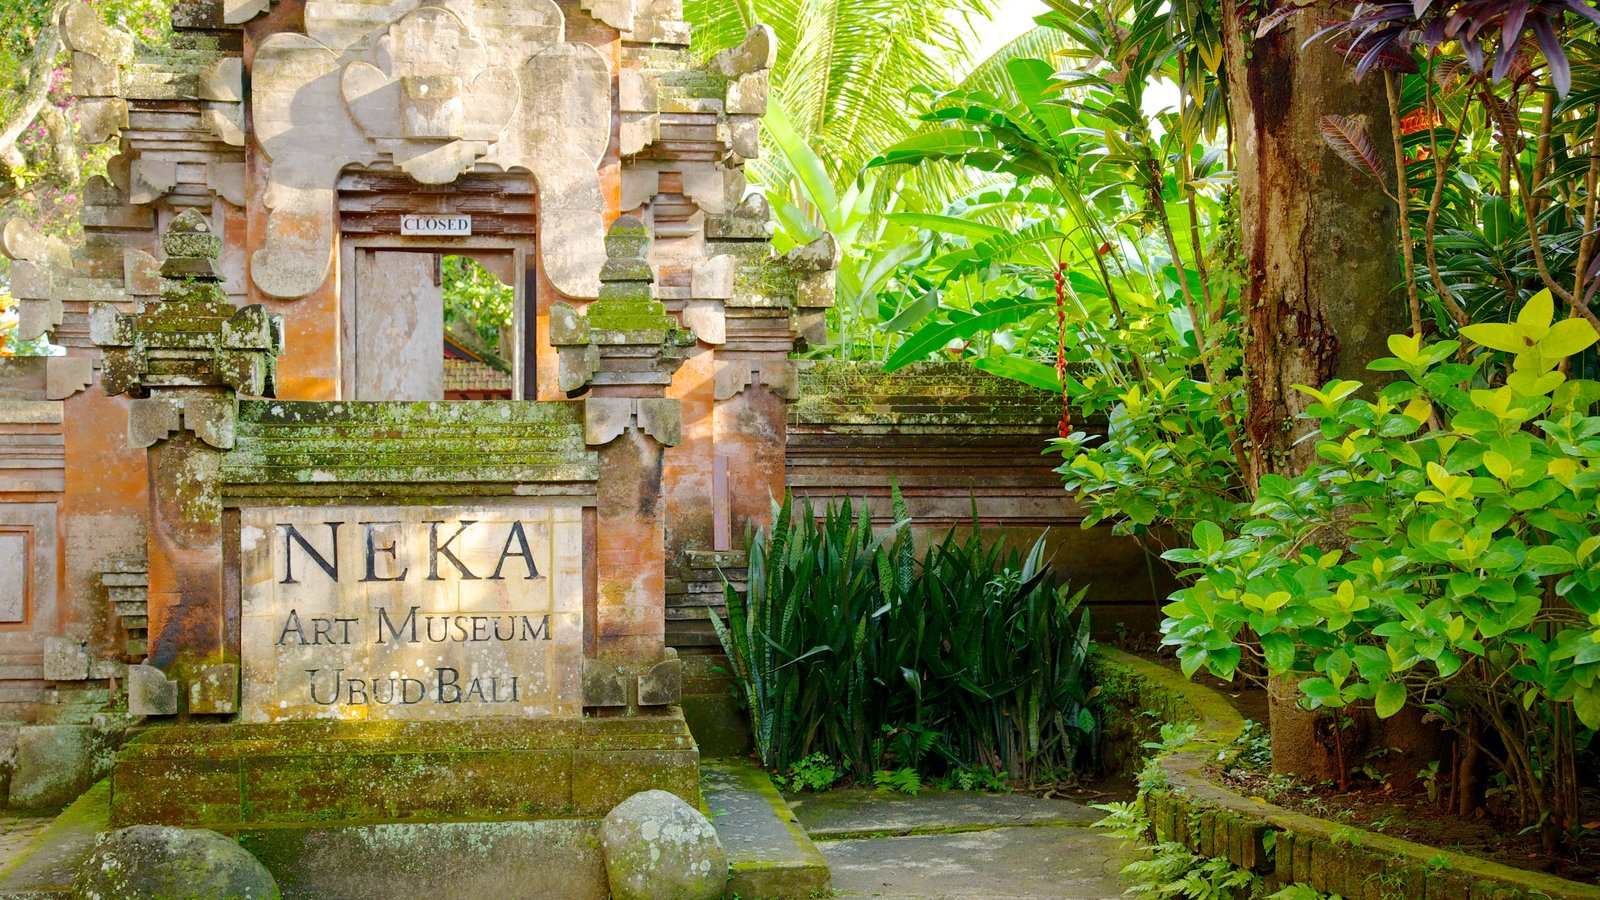 Neka Art Museum which includes a garden and signage